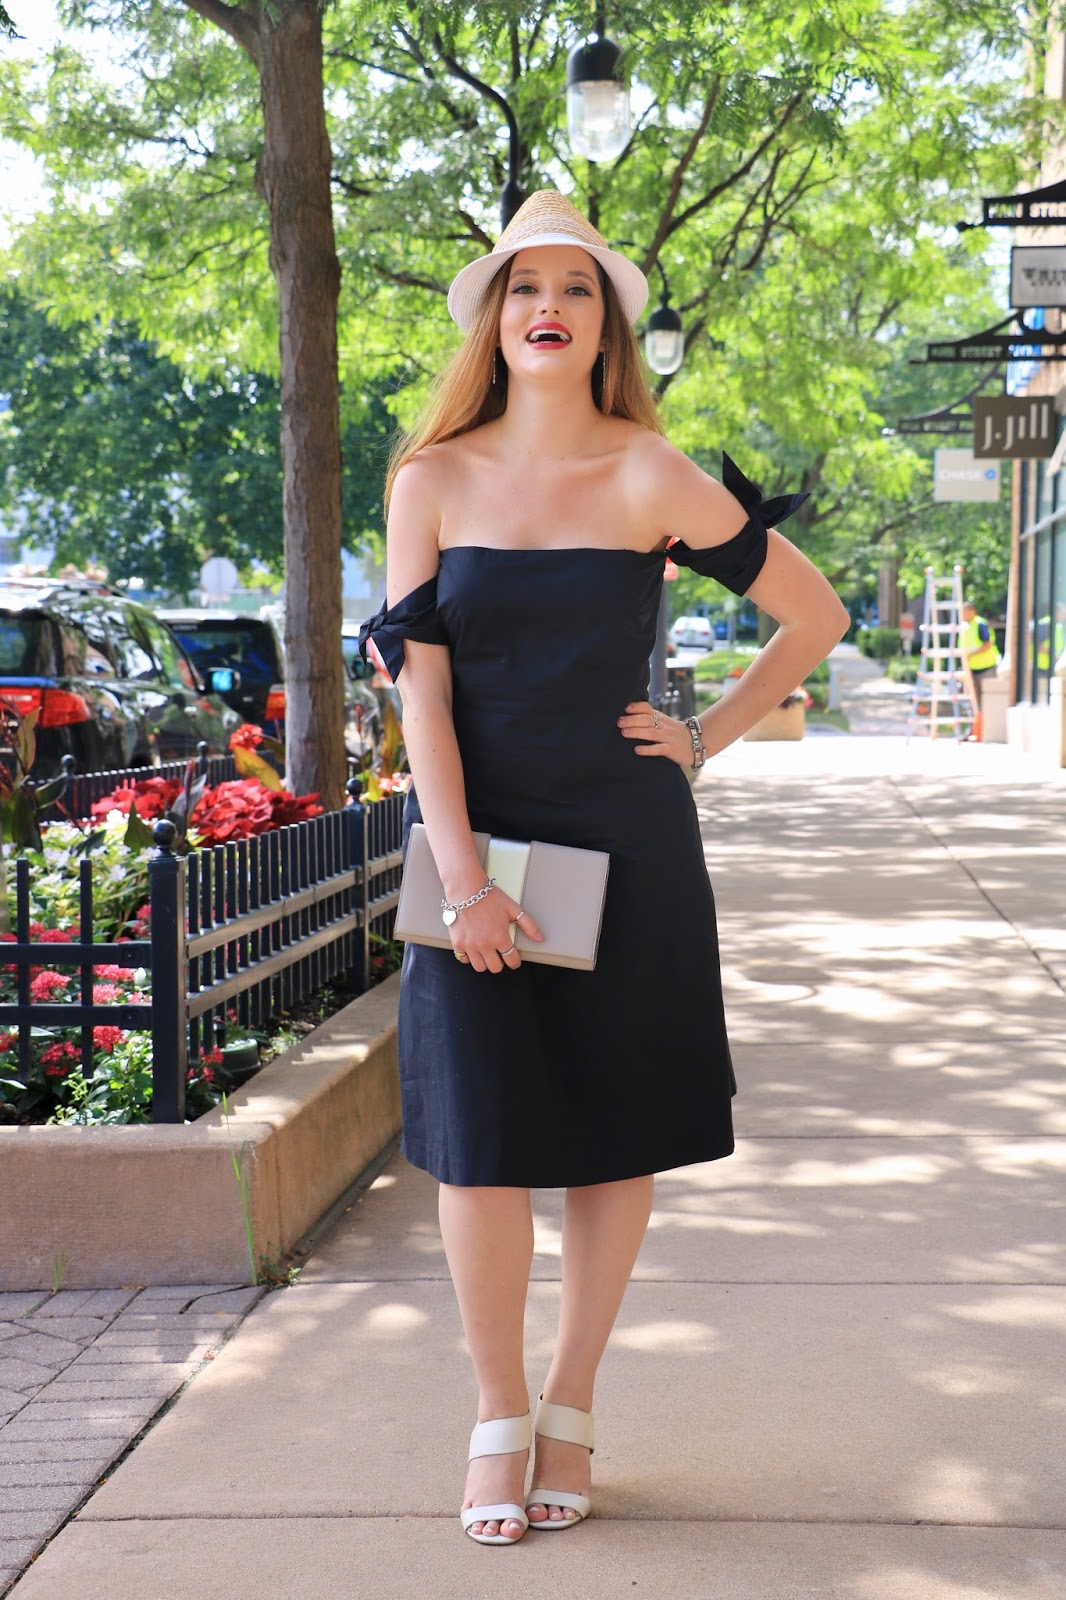 Fashion blogger Kathleen Harper of Kat's Fashion Fix showing how to wear a black dress